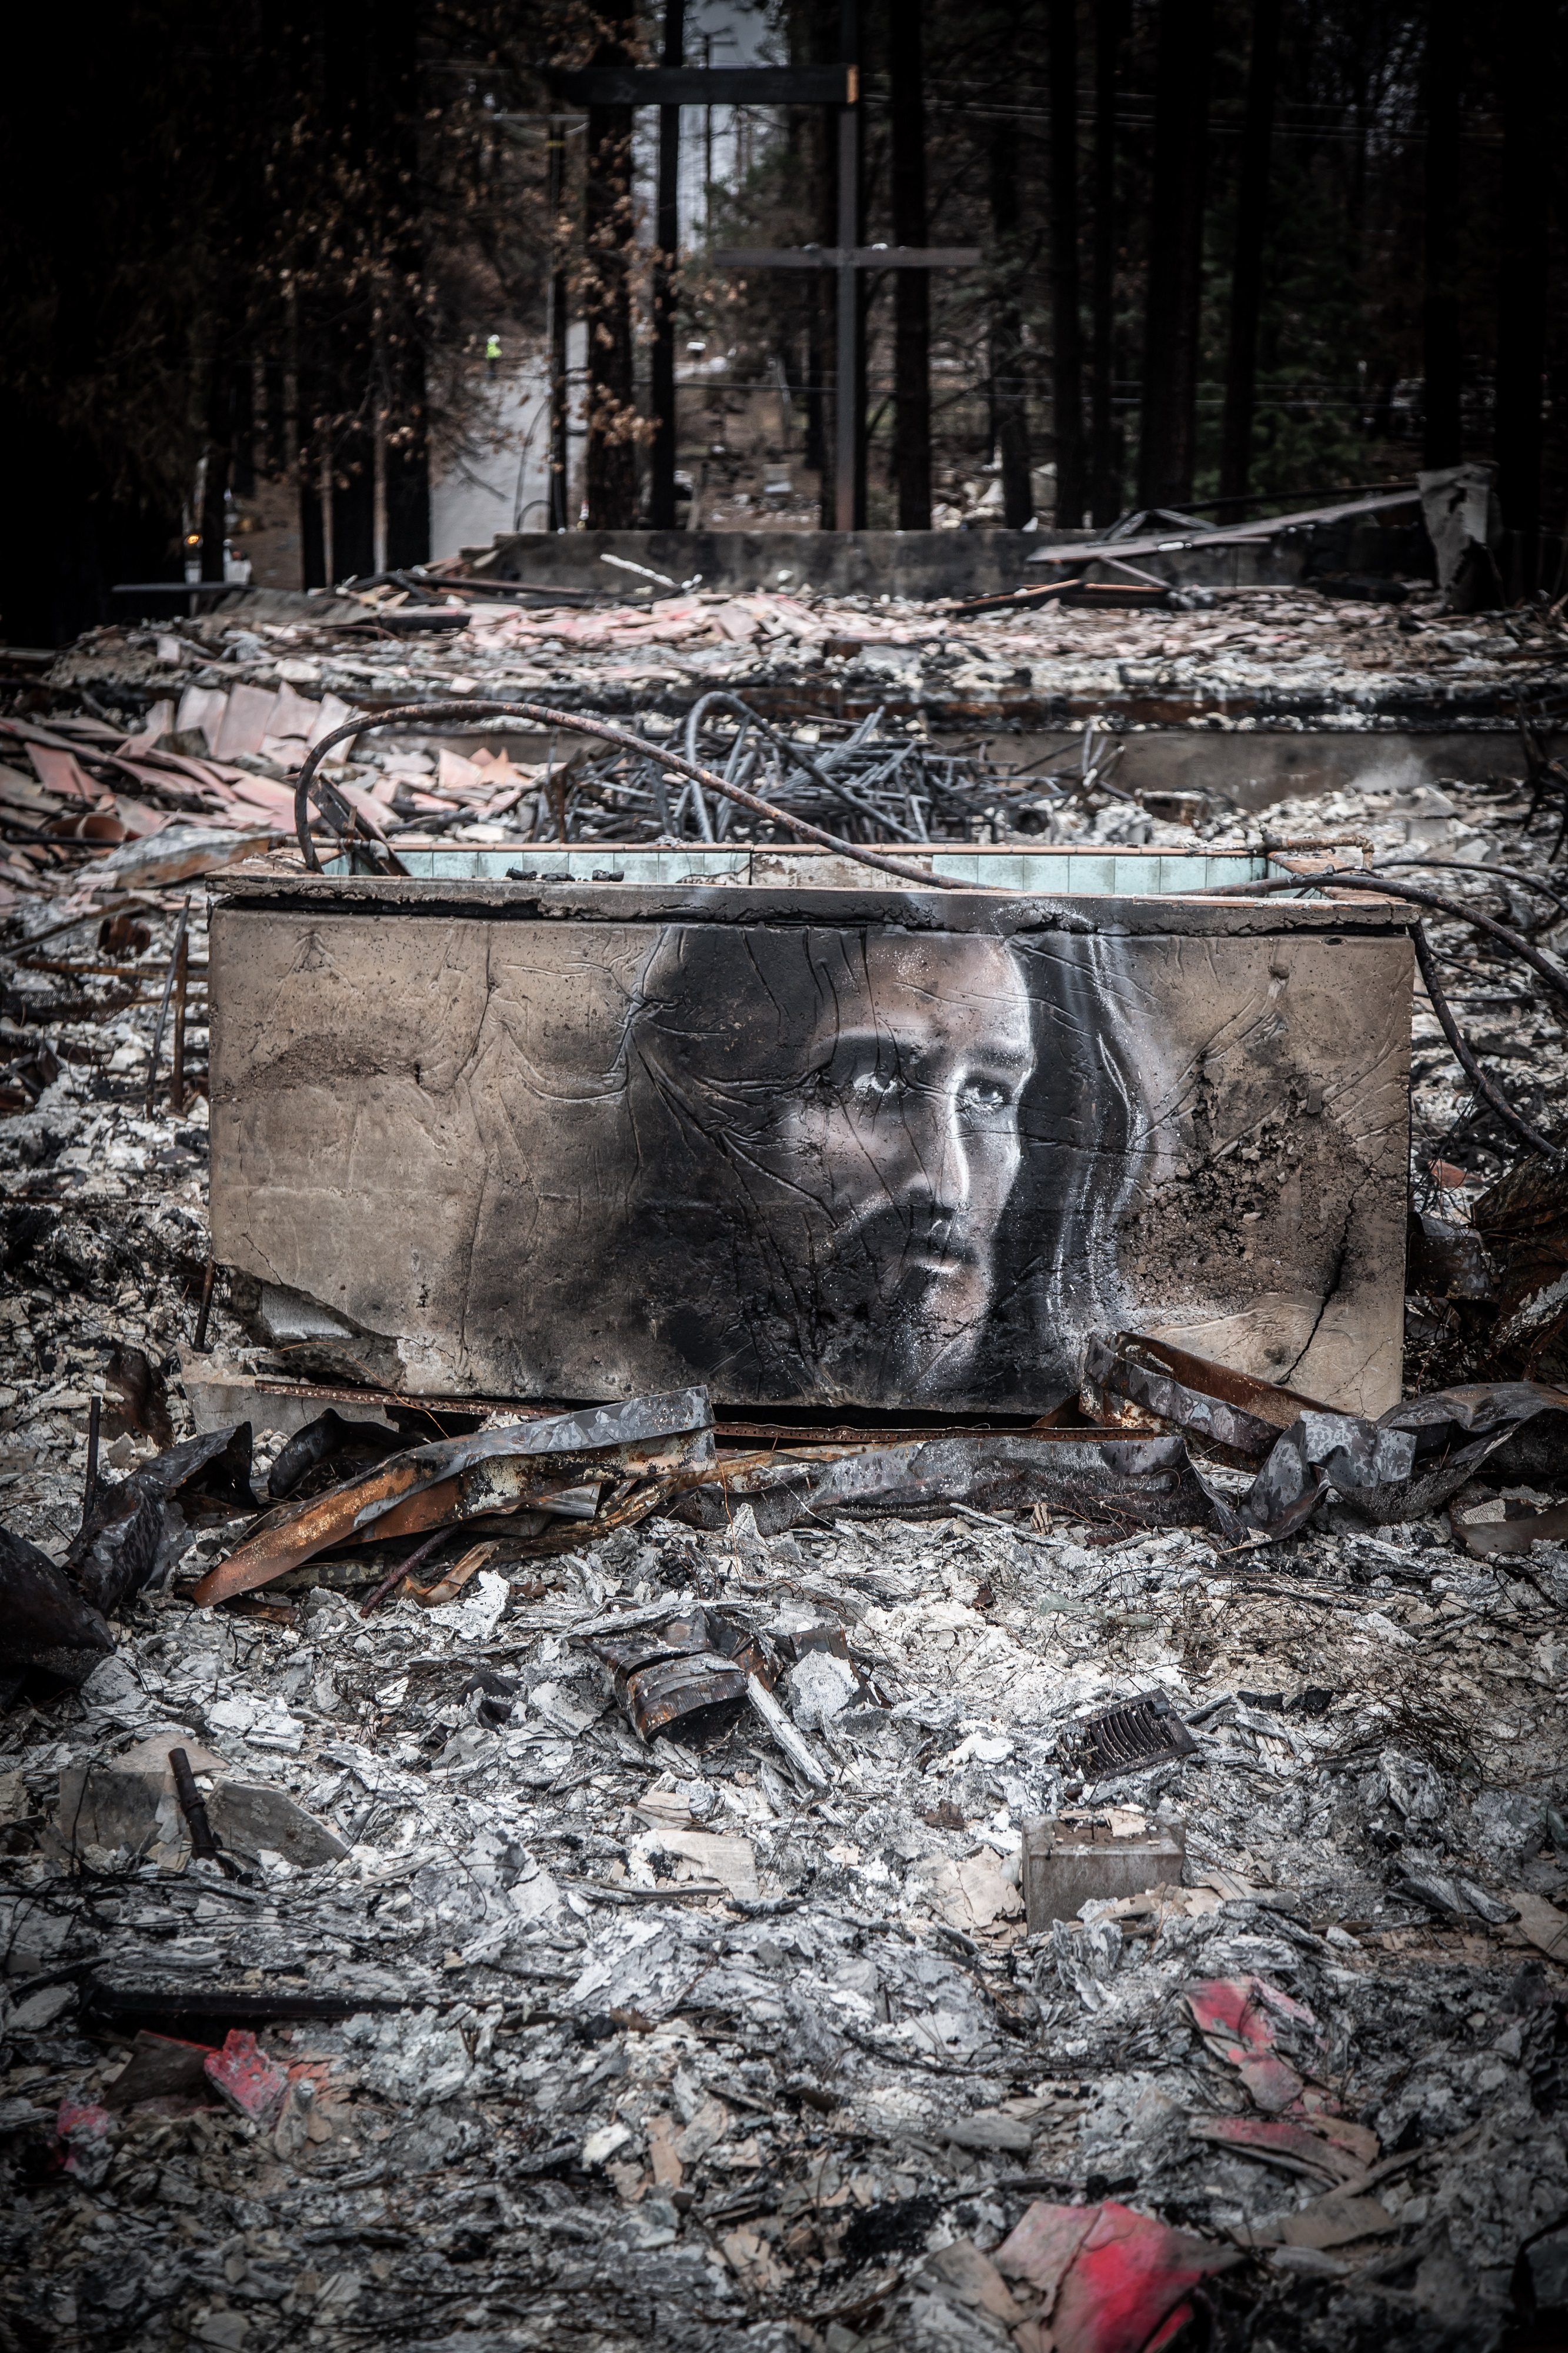 Artist Shane Grammer has created art among the ashes in Paradise